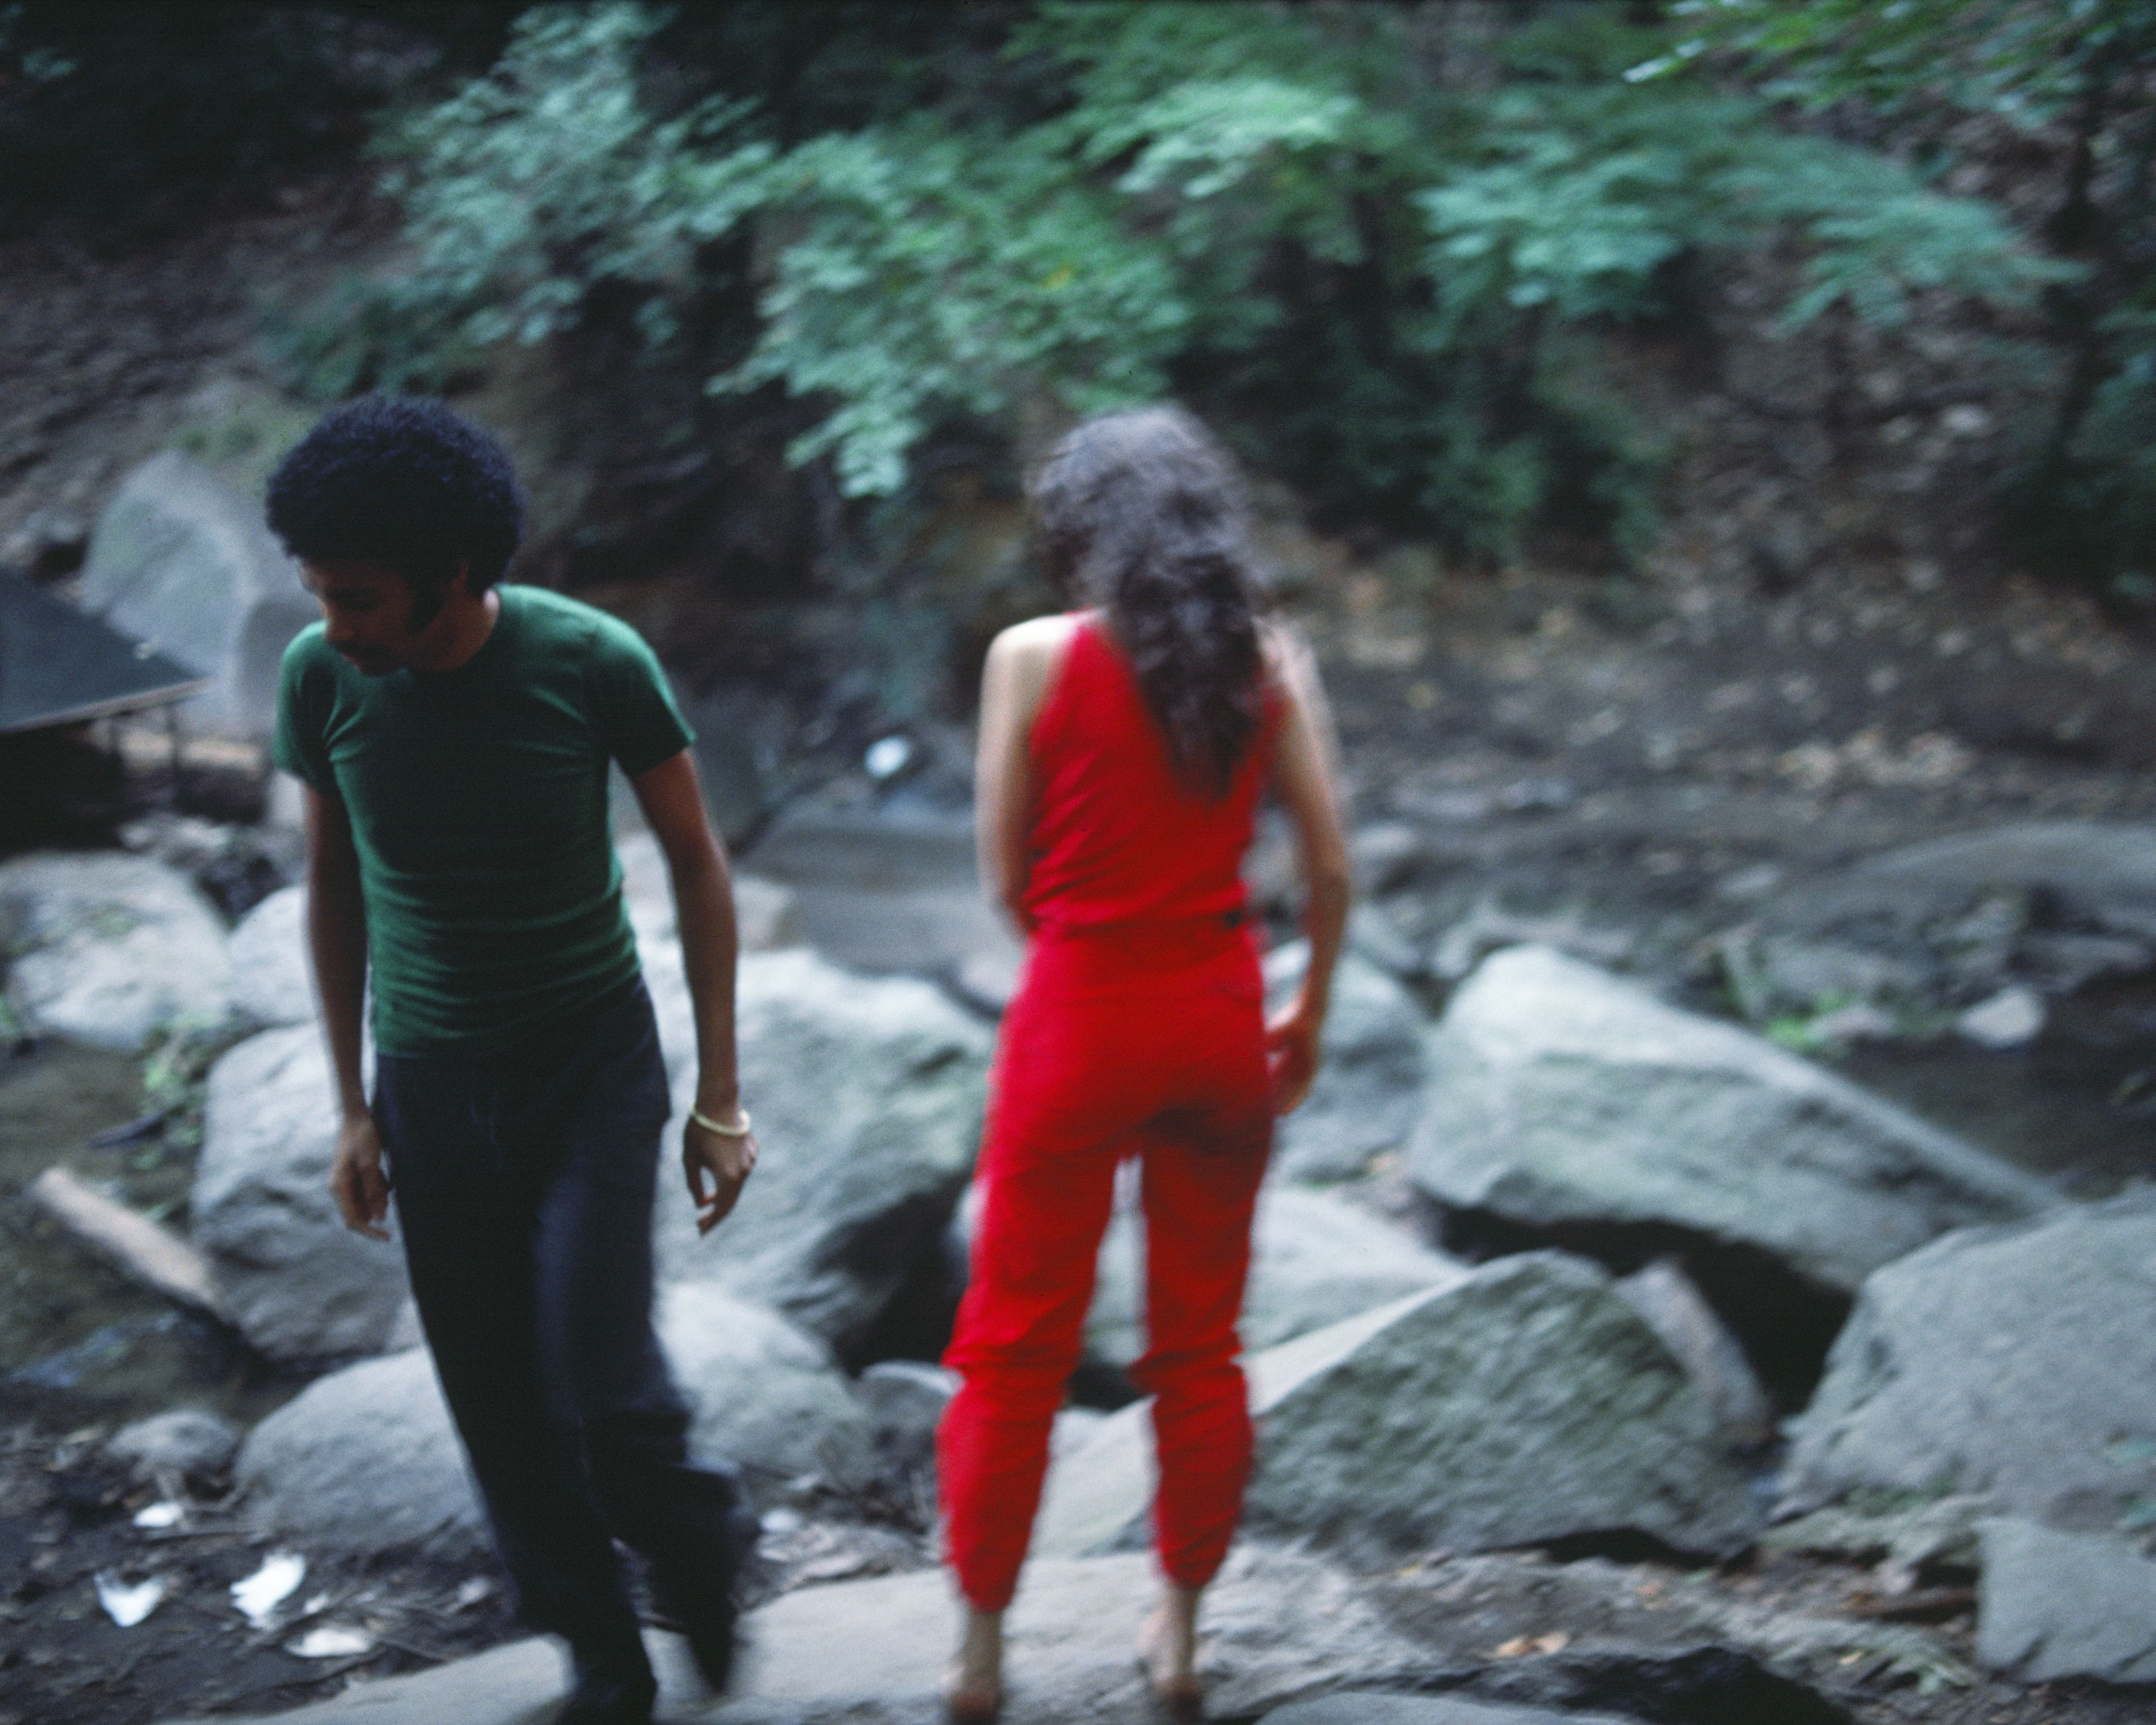 Rivers, First Draft: The Young Man pulls away, 1982/2015, Digital C-print from Kodachrome 35mm slides in 48 parts, 16h x 20w in (40.64h x 50.80w cm)